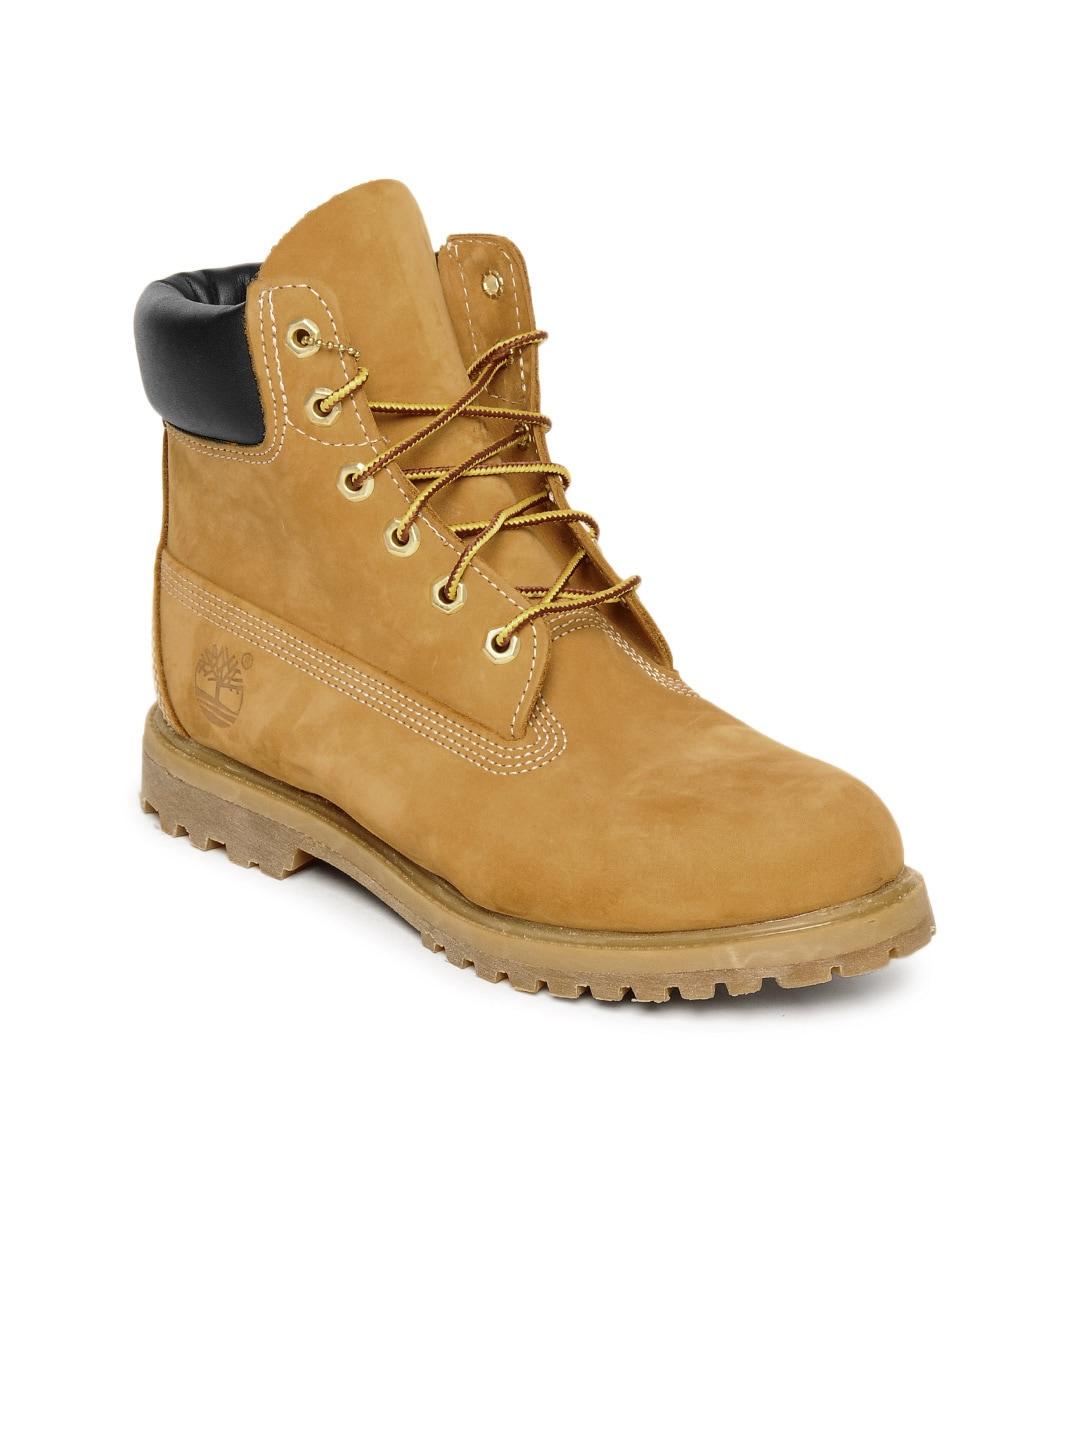 Do Boots Sell Shoes